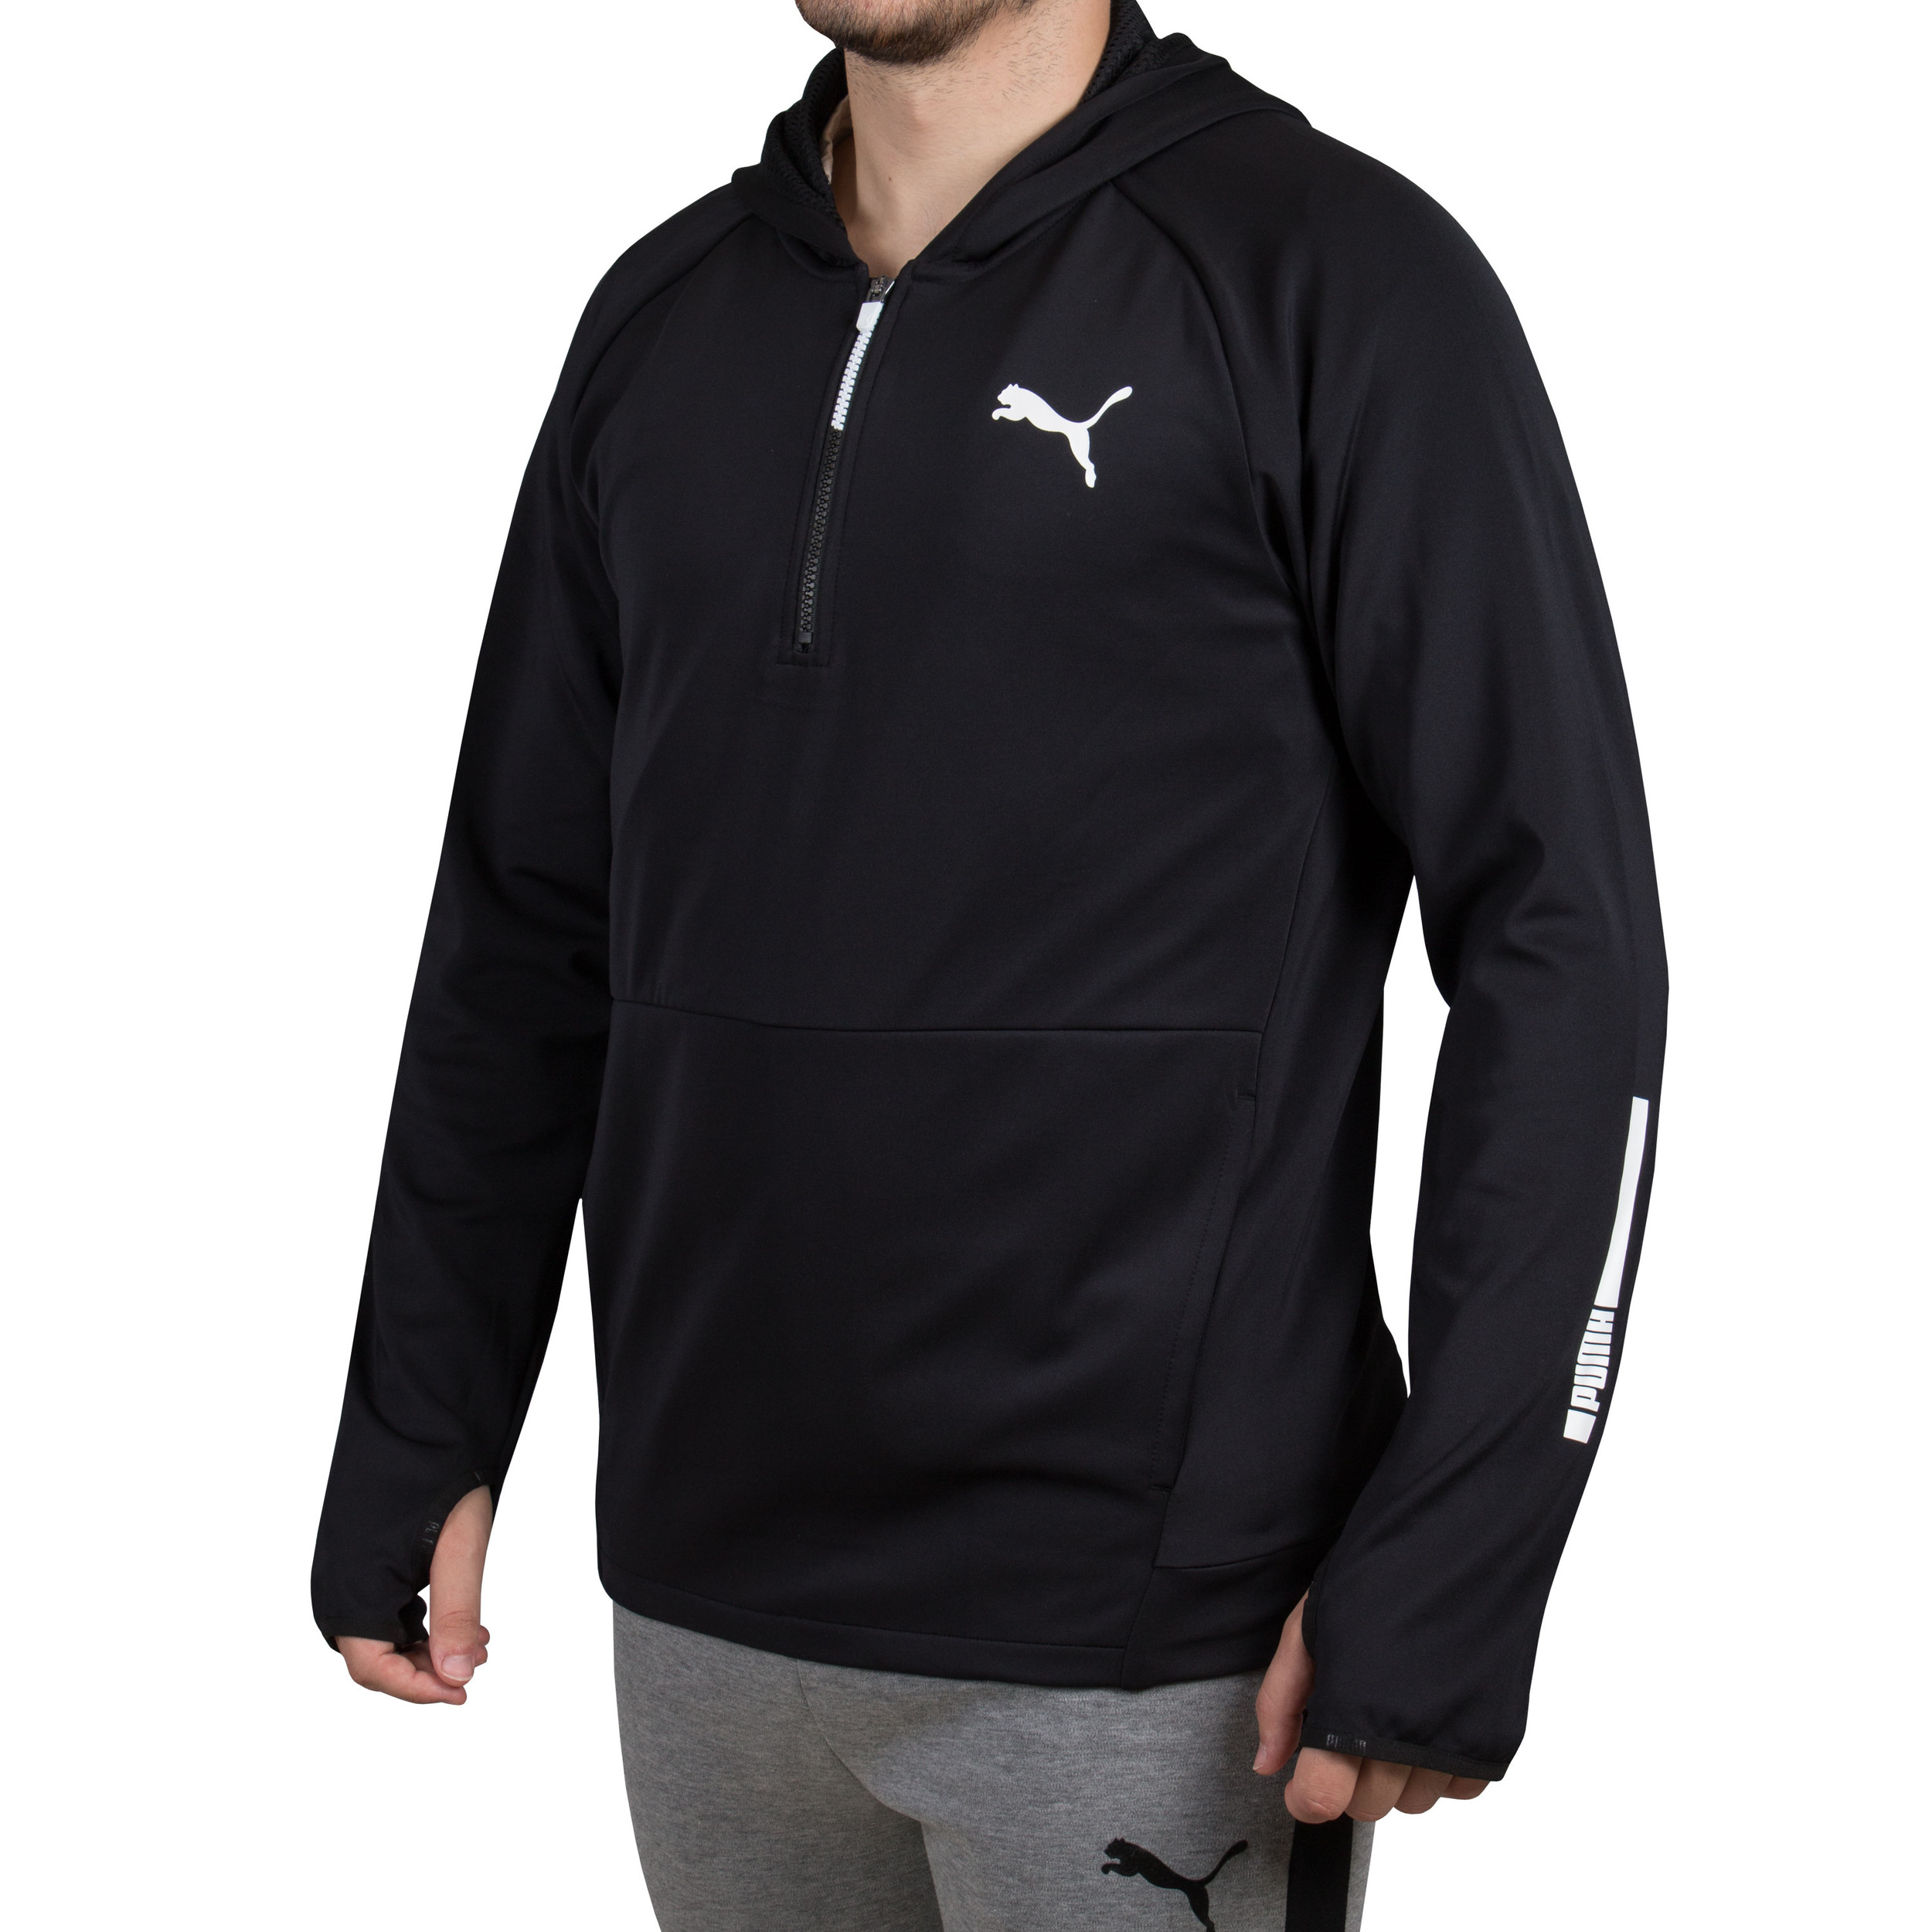 Details about Puma Mens Tec Sports 12 Zip Hoody Black Outdoors Running Breathable Lightweight